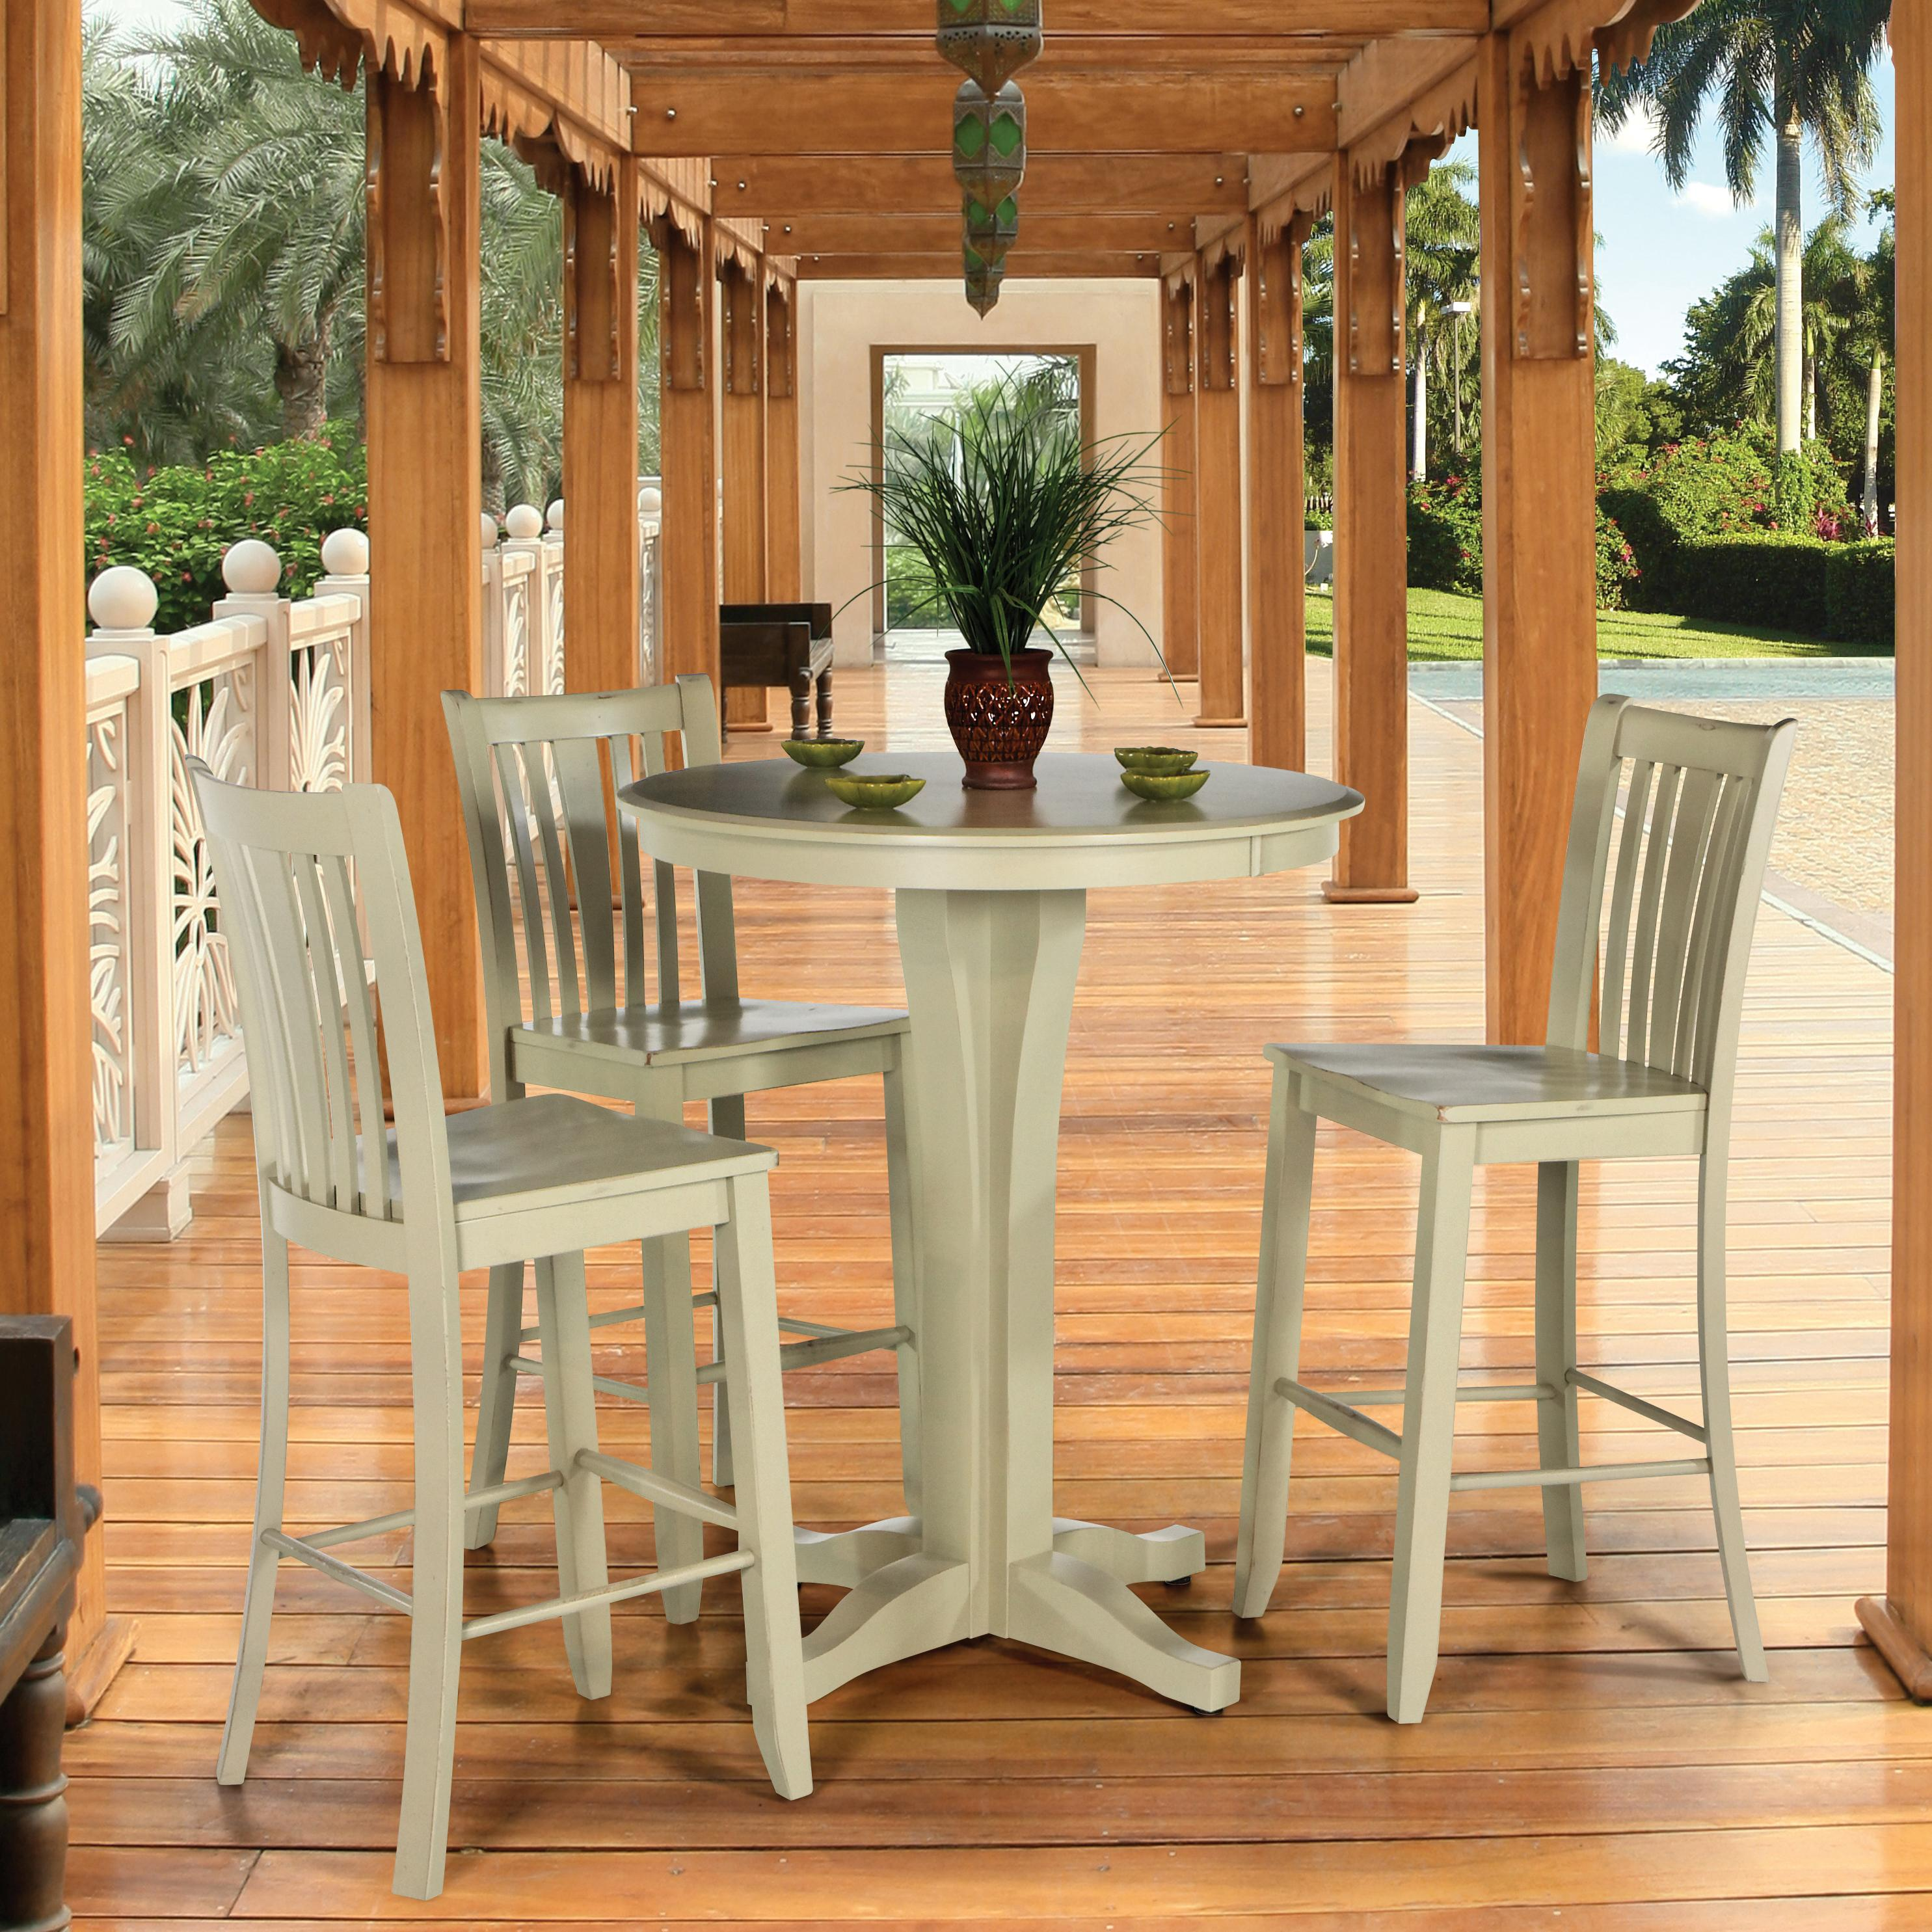 Canadel custom dining high dining customizable round pub for High top dining set